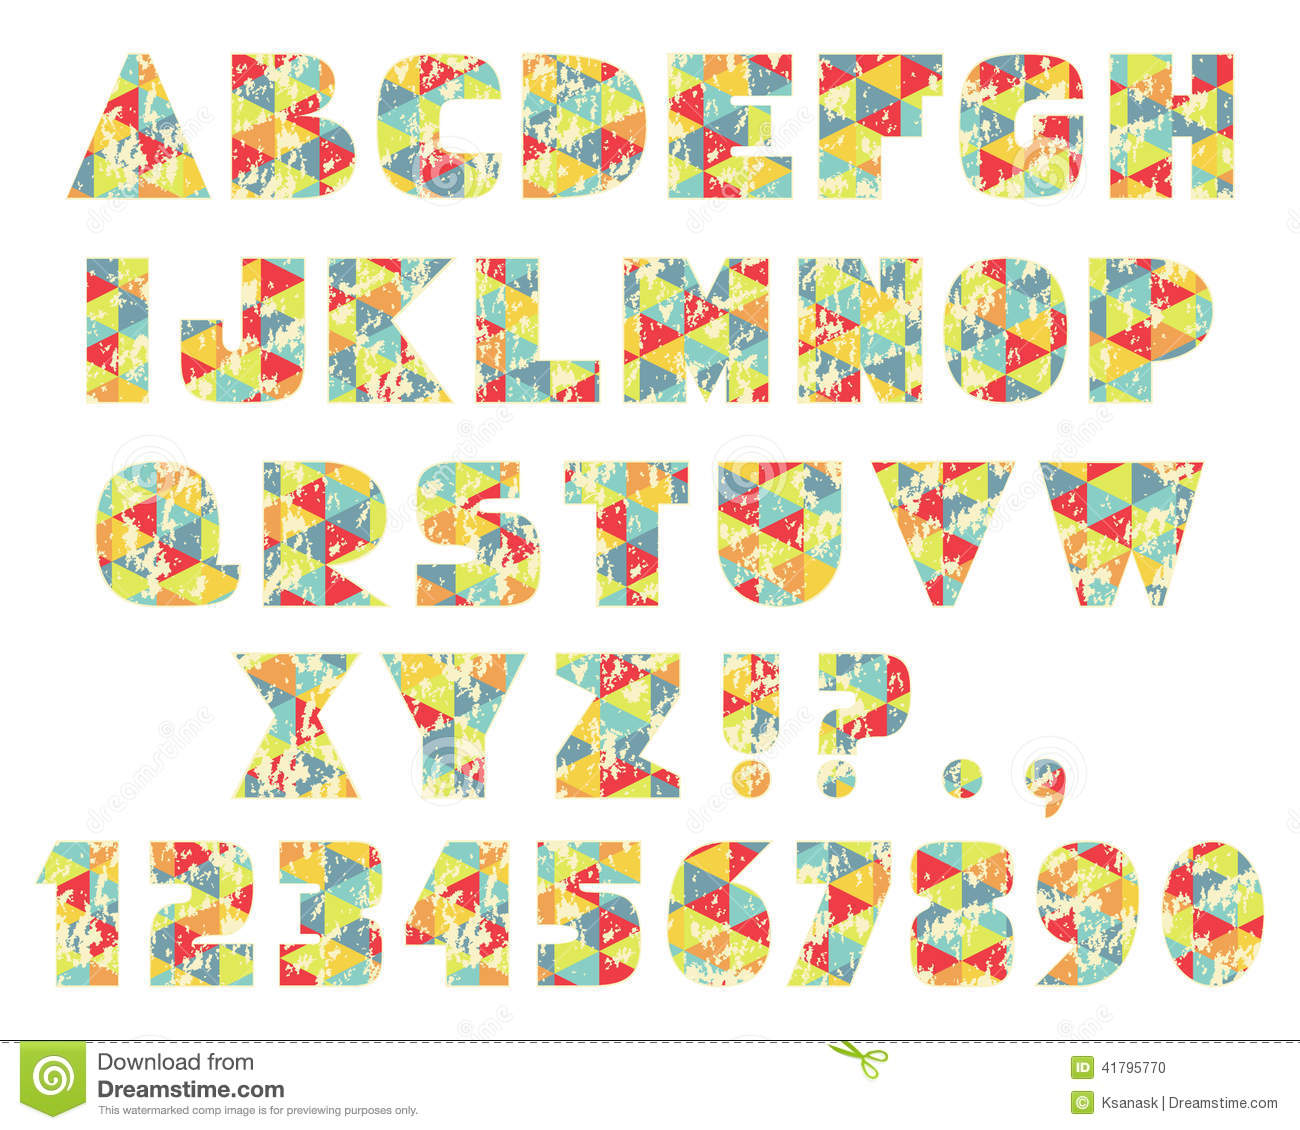 how to change the colour of google alphabets